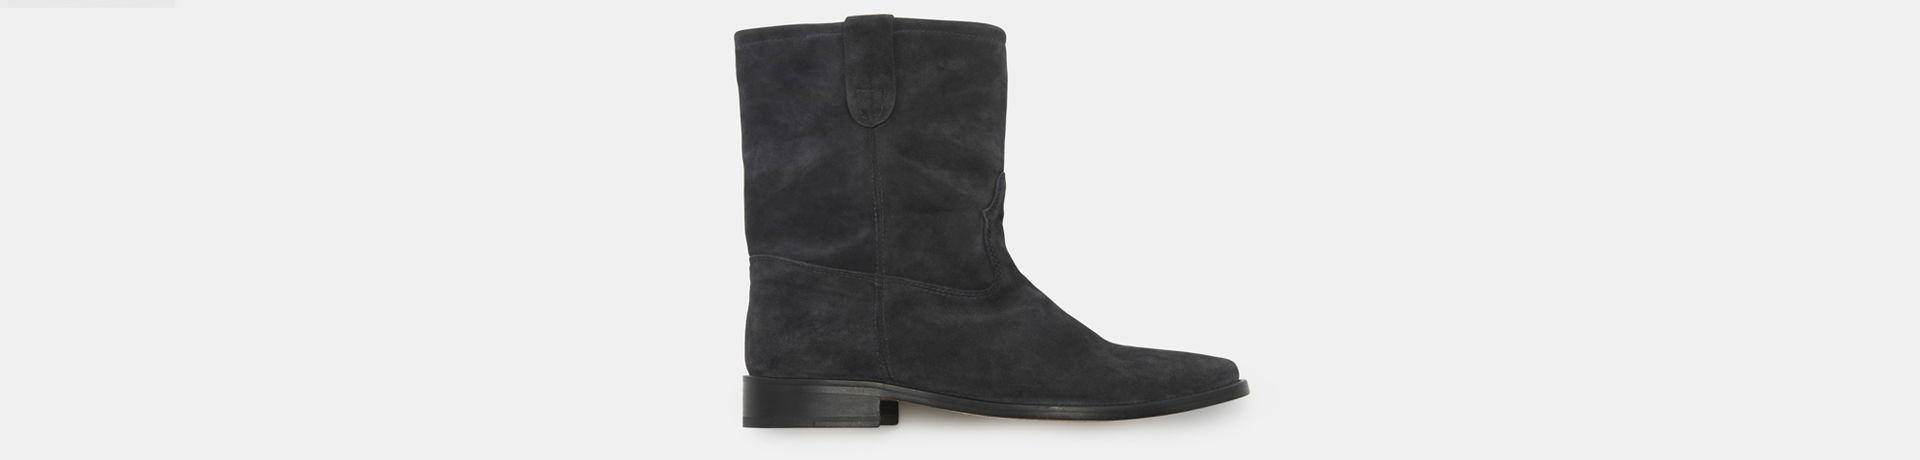 CRYSTON boots